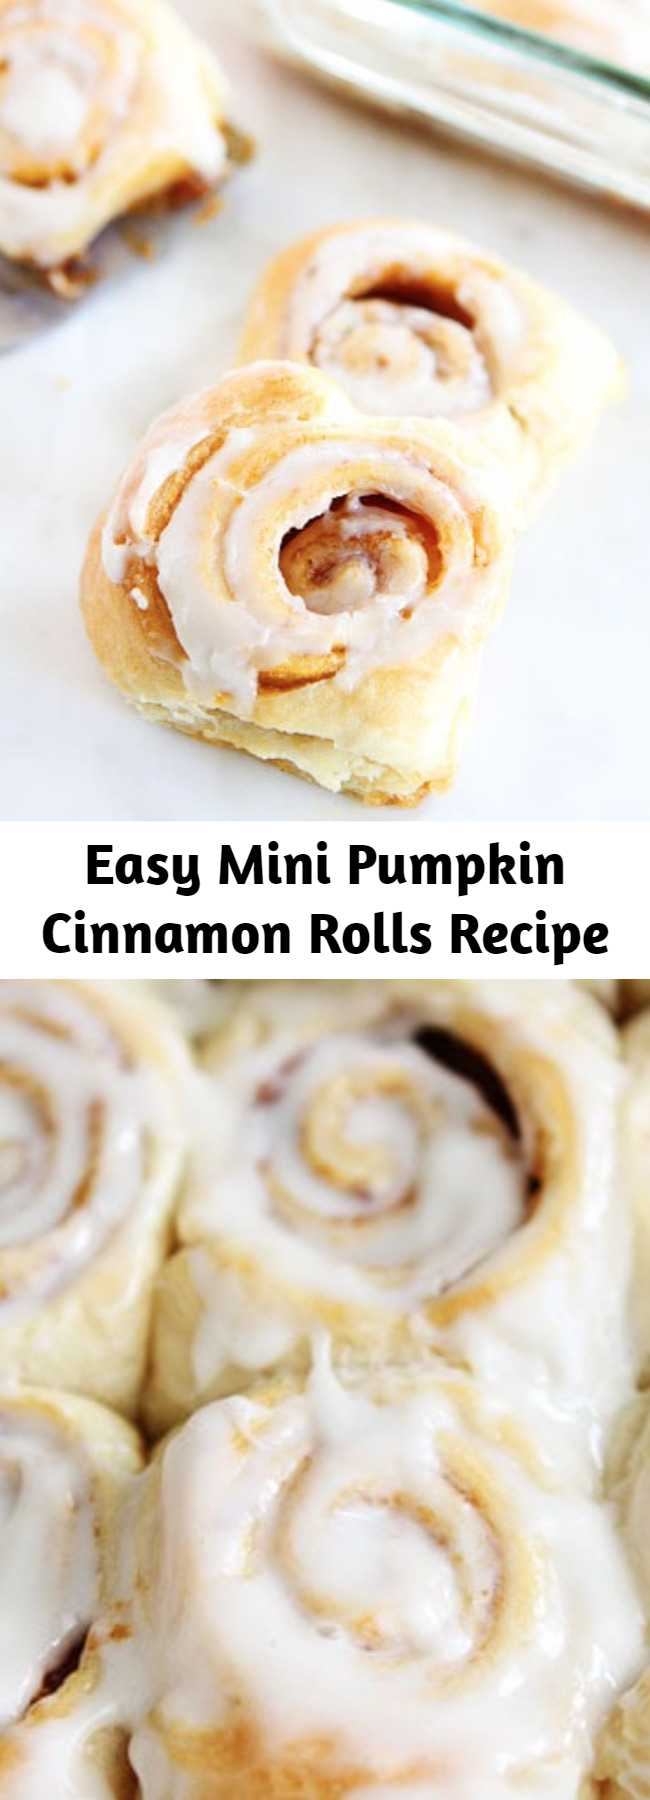 Easy Mini Pumpkin Cinnamon Rolls Recipe - Mini cinnamon rolls made with pumpkin butter and cream cheese frosting! The best part? They take less than 30 minutes to make!